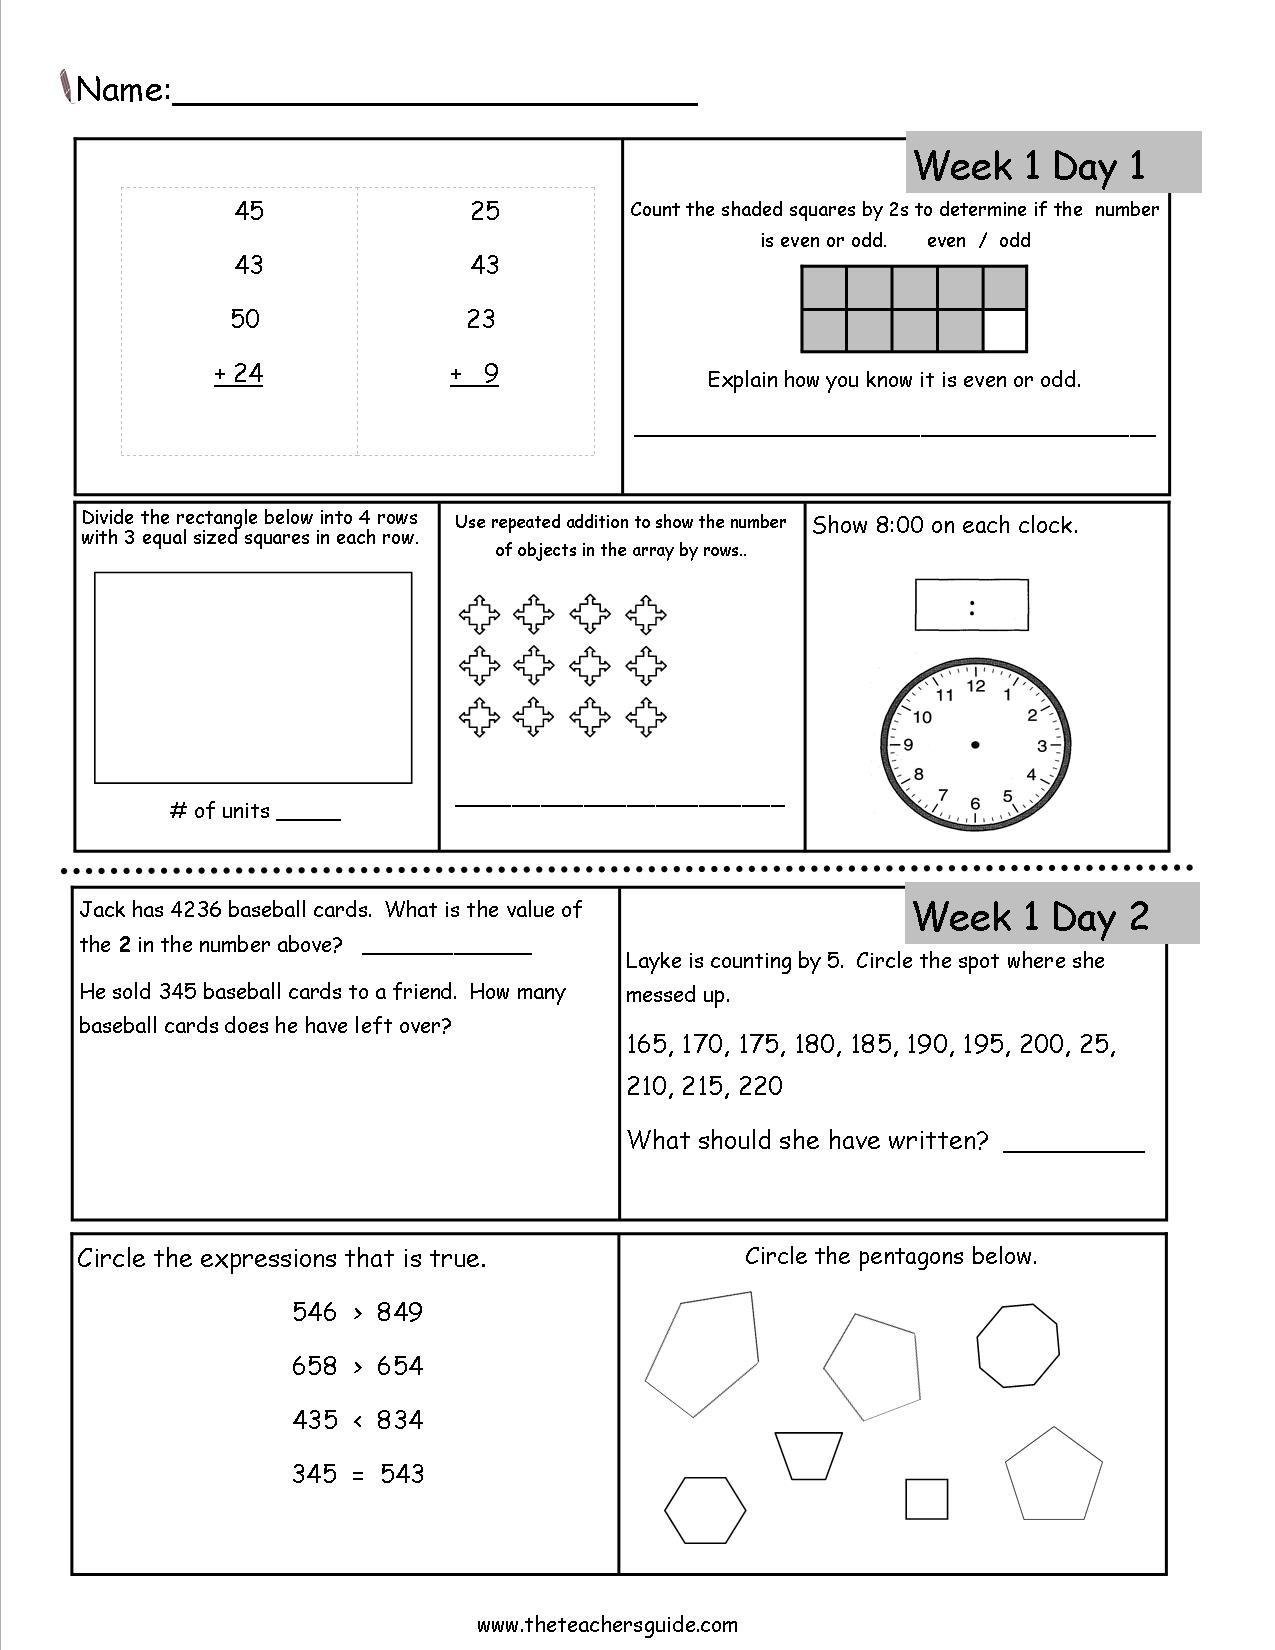 Math Worksheets for 3rd Grade | second grade math worksheets ...